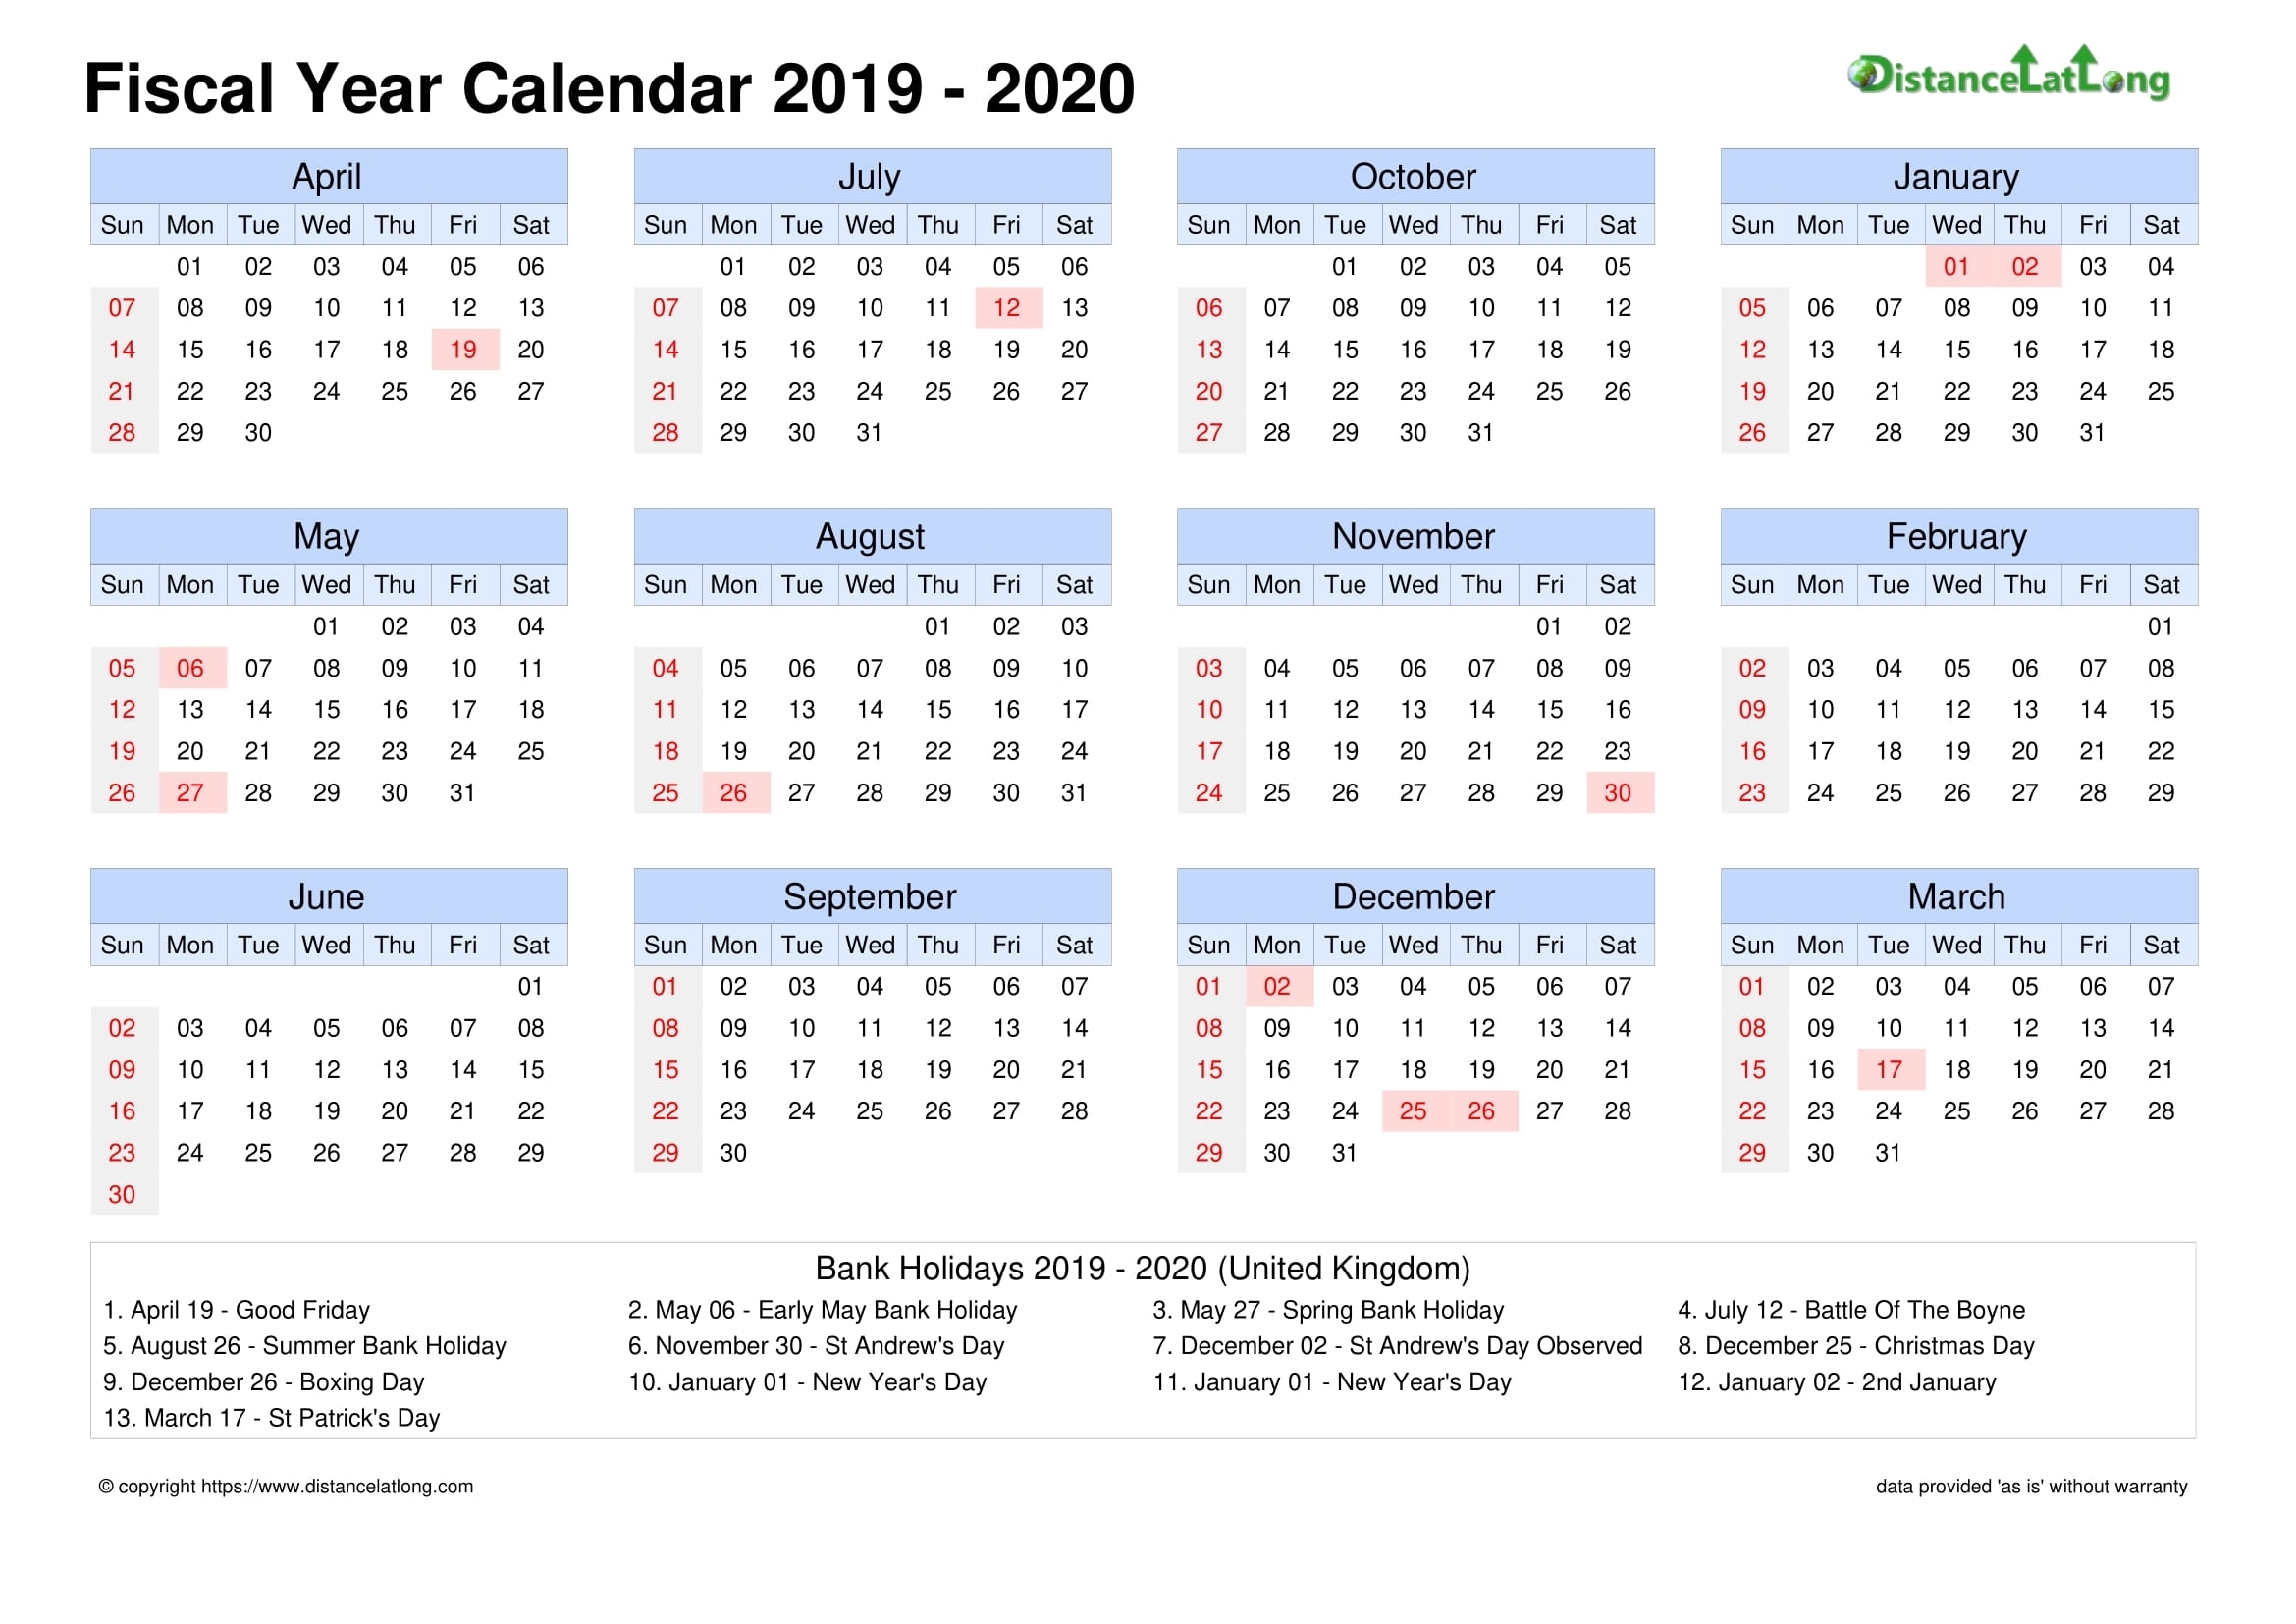 Fiscal Year 2019-2020 Calendar Templates, Free Printable pertaining to Financial Calendar 2019/2020 Week Number 25